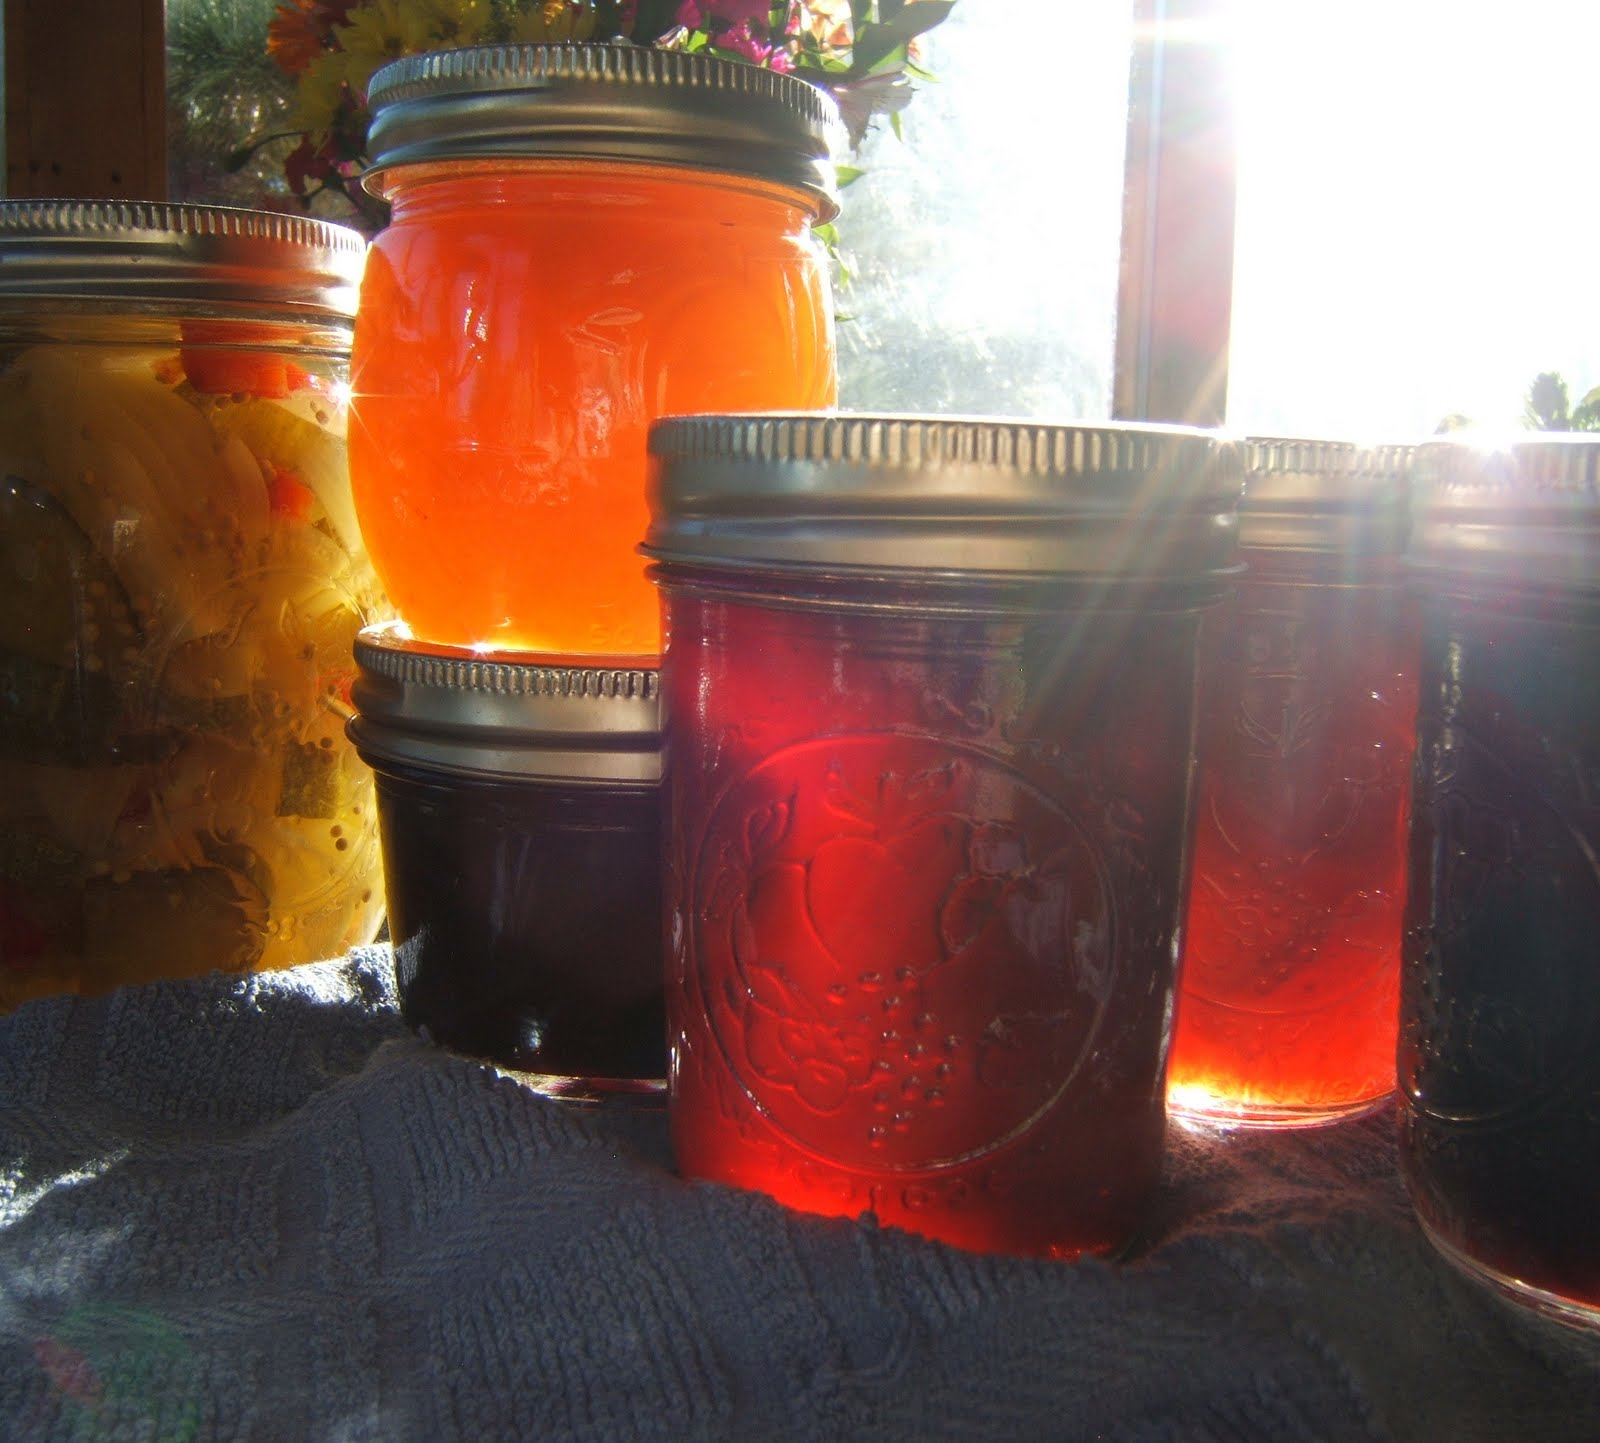 Wonderful morning sunlight shining through my jars of jam, Taos Canyon, New Mexico